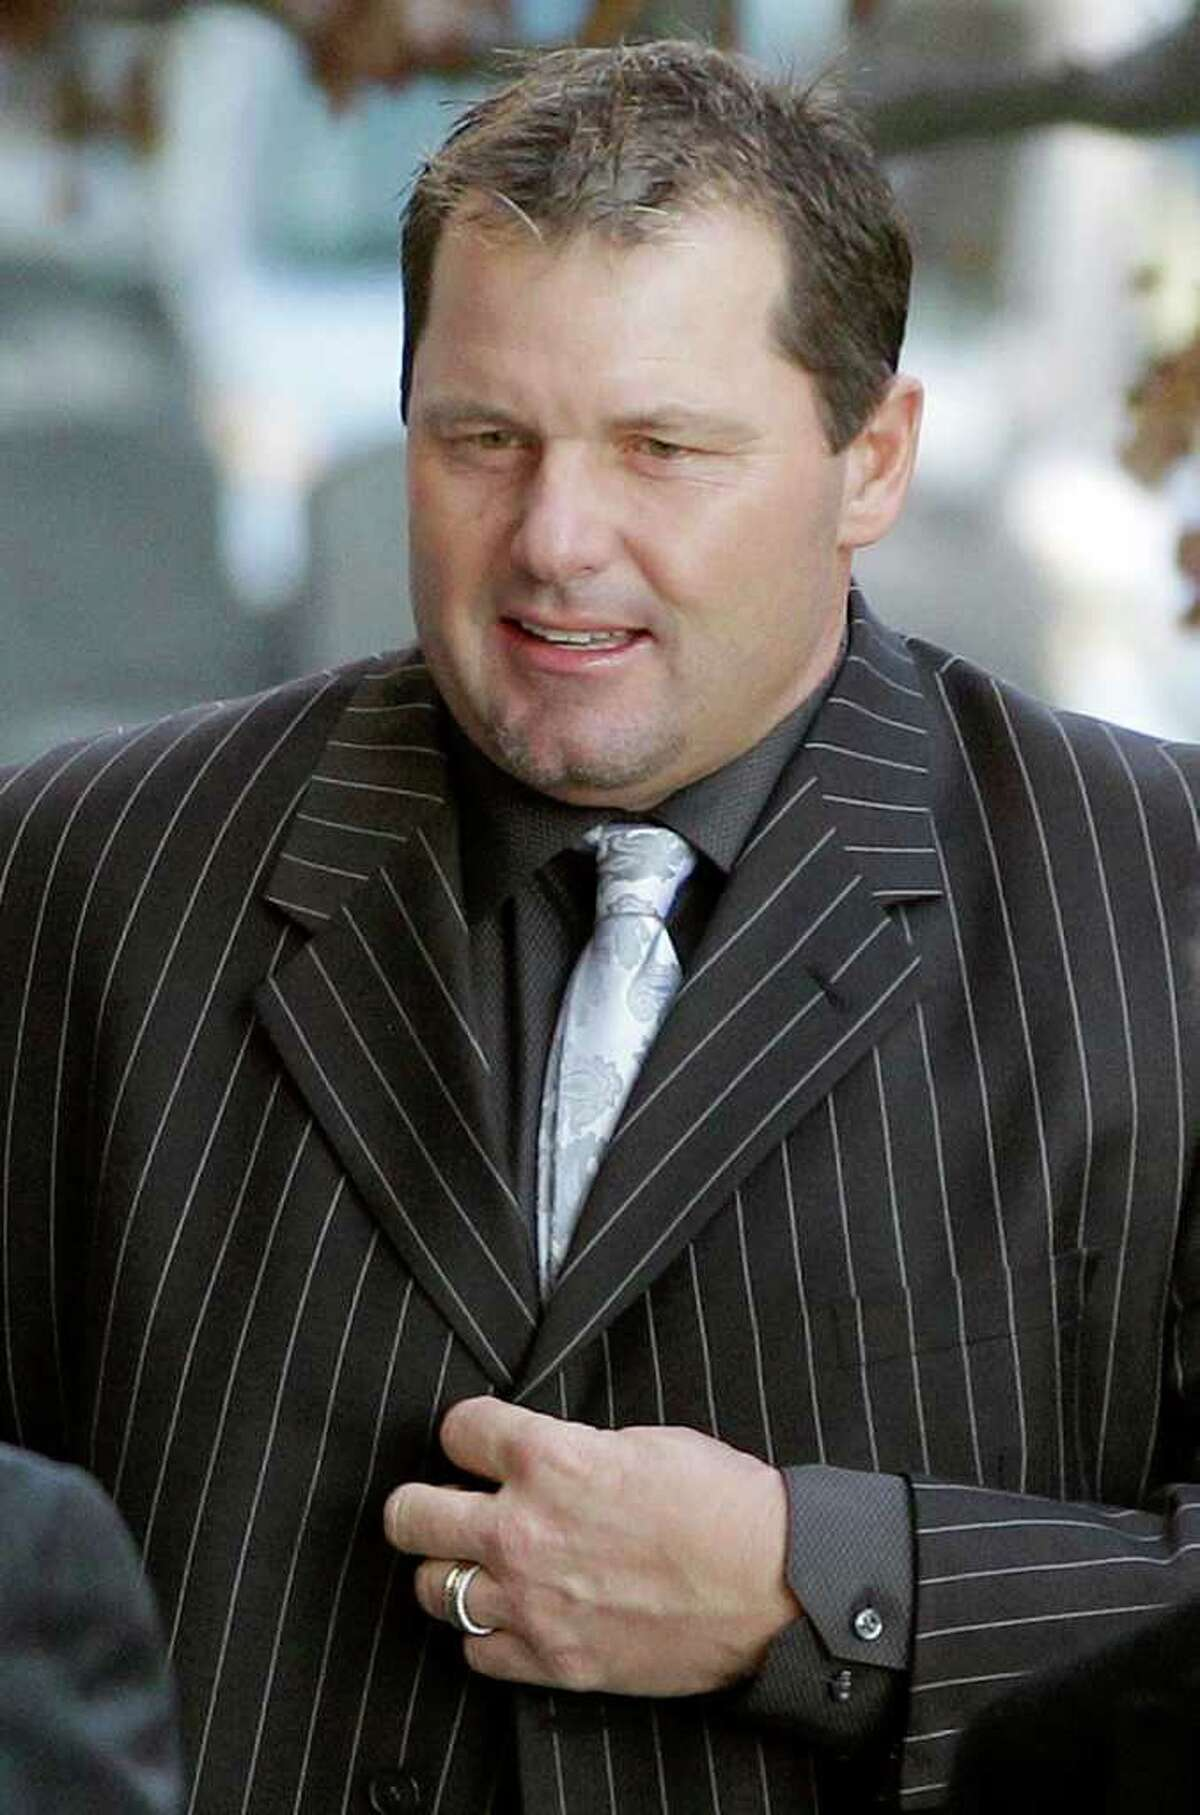 Associated Press writer Nedra Pickler takes a look at some of the principal people expected to be involved in former major-league pitcher Roger Clemens' trial, scheduled to begin today, on charges he lied about using steroids and human growth hormone: ROGER CLEMENS: The standout pitcher maintains he never used performance-enhancing drugs during a 23-season career that ended with ended with 354 wins, 4,672 strikeouts and a record seven Cy Young Awards. But prosecutors say he is lying and broke the law when he made his denials under oath before a congressional committee.